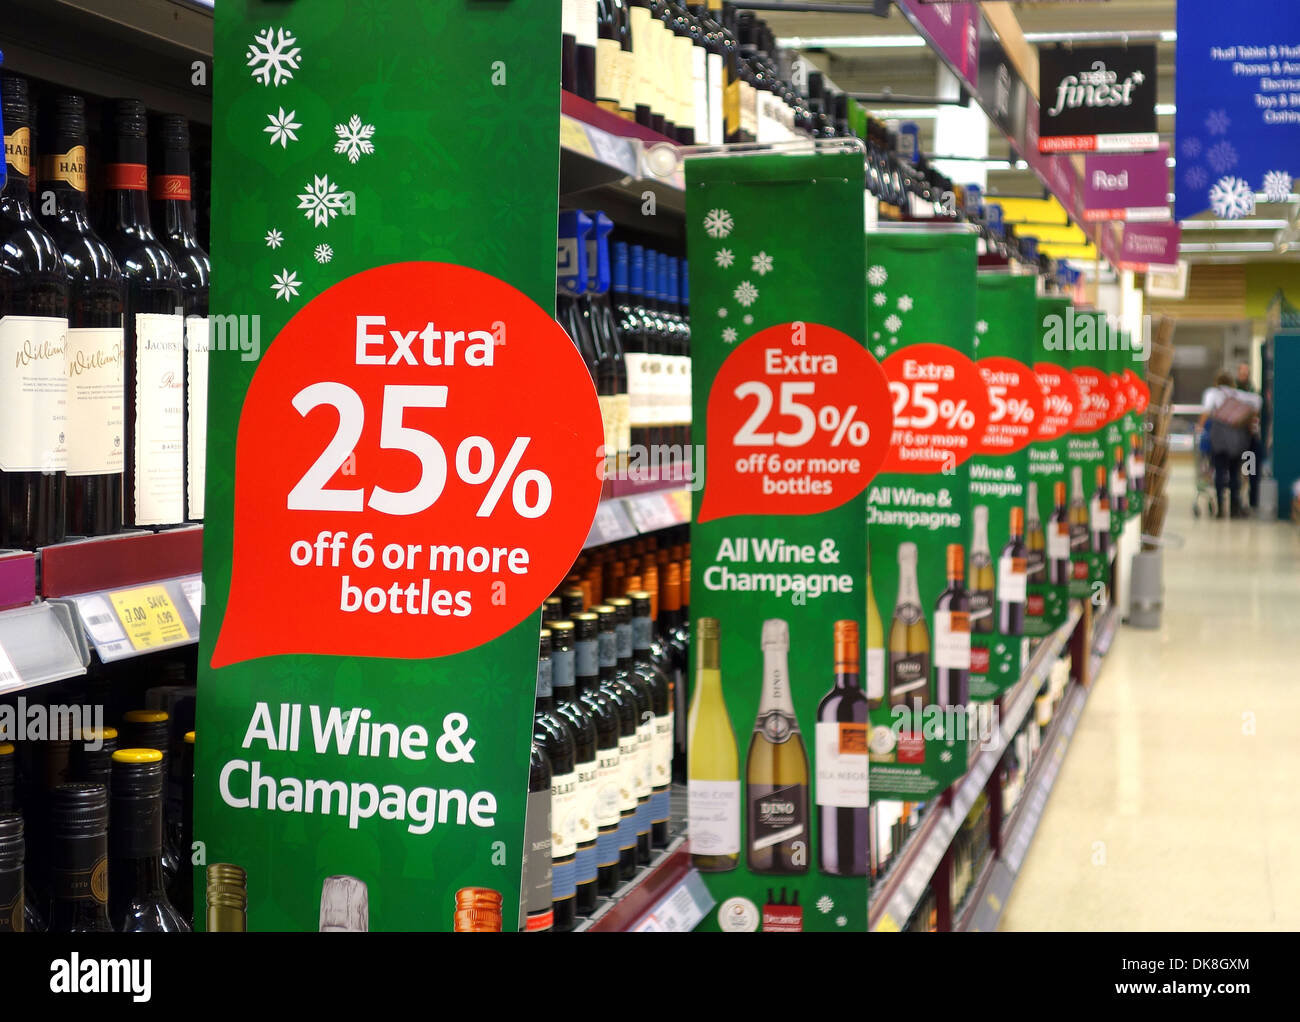 Up to £10 Off Selected Gin, Whiskey, and Vodka at Tesco Groceries From Gordons to Russian Standard, make sure you save on your spirits by shopping at Tesco Groceries.